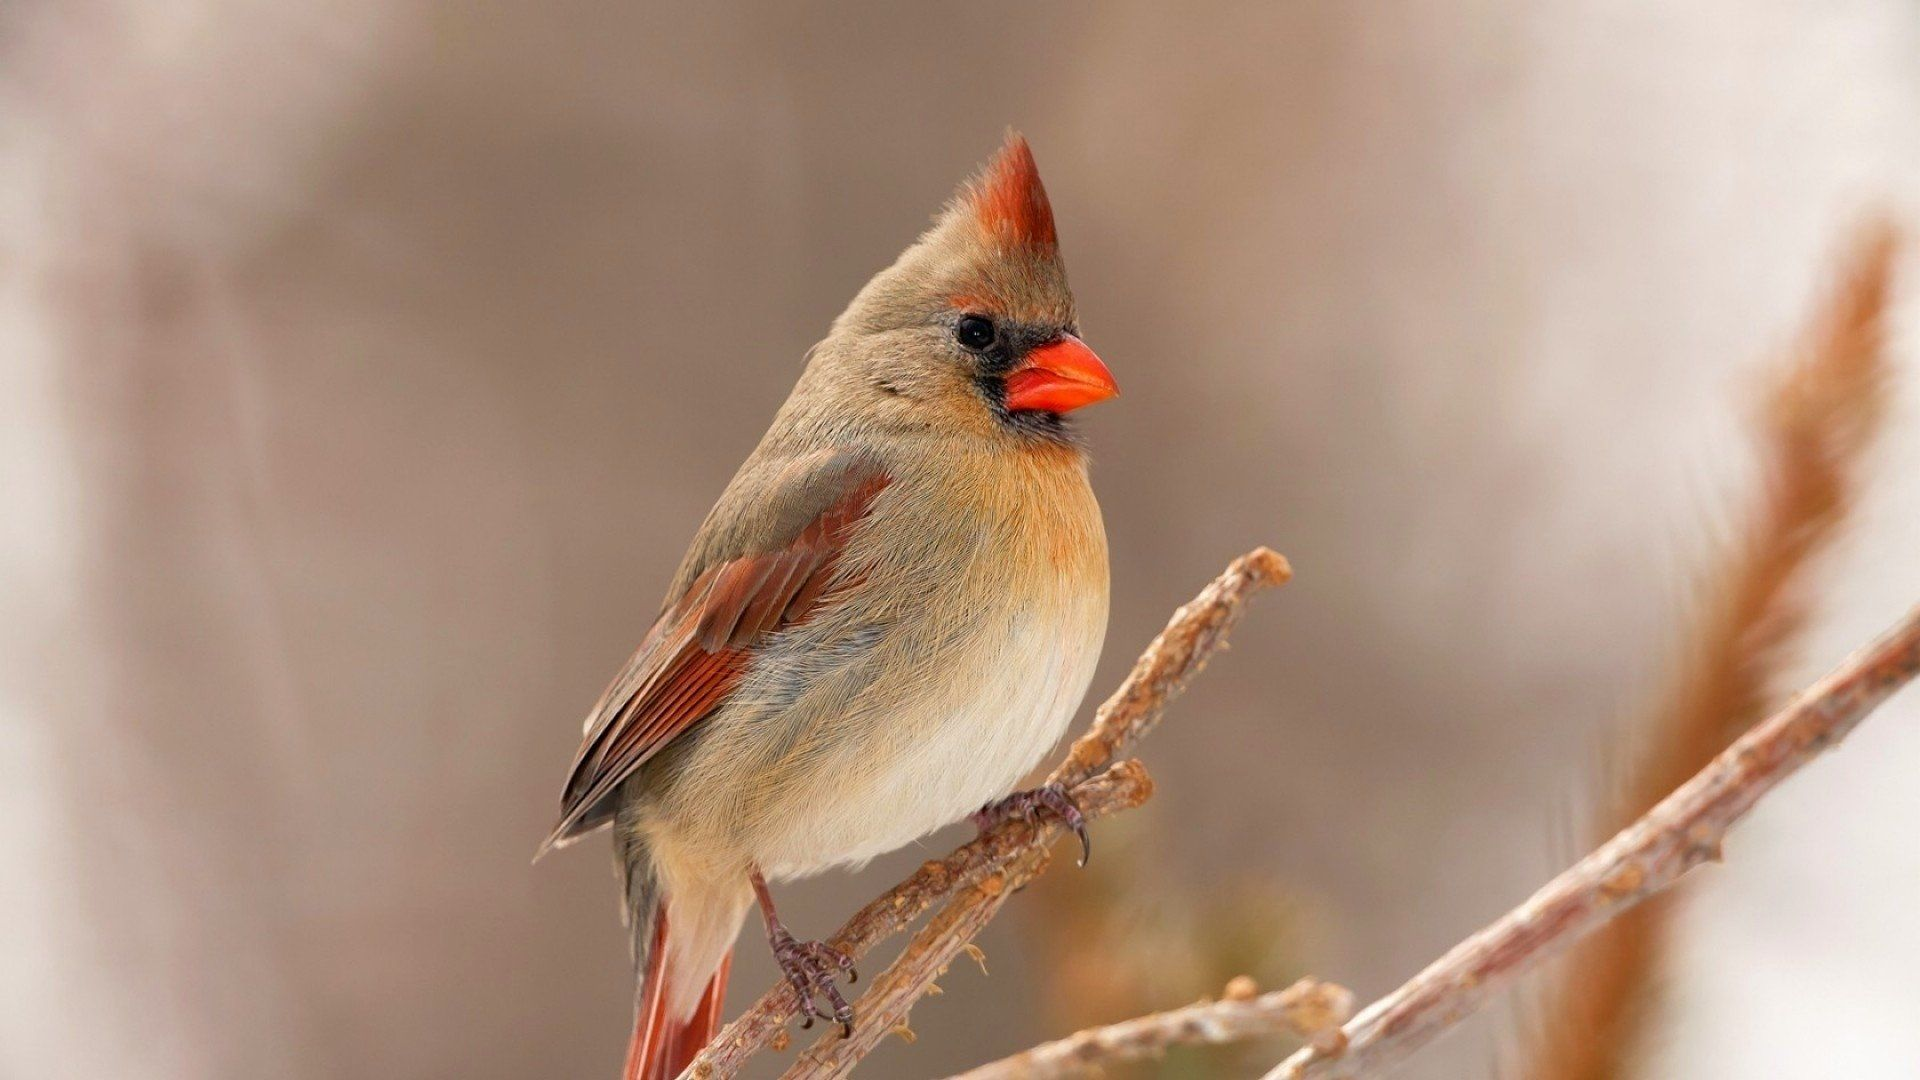 1920x1080 Female Cardinal Wallpaper Background Image. View